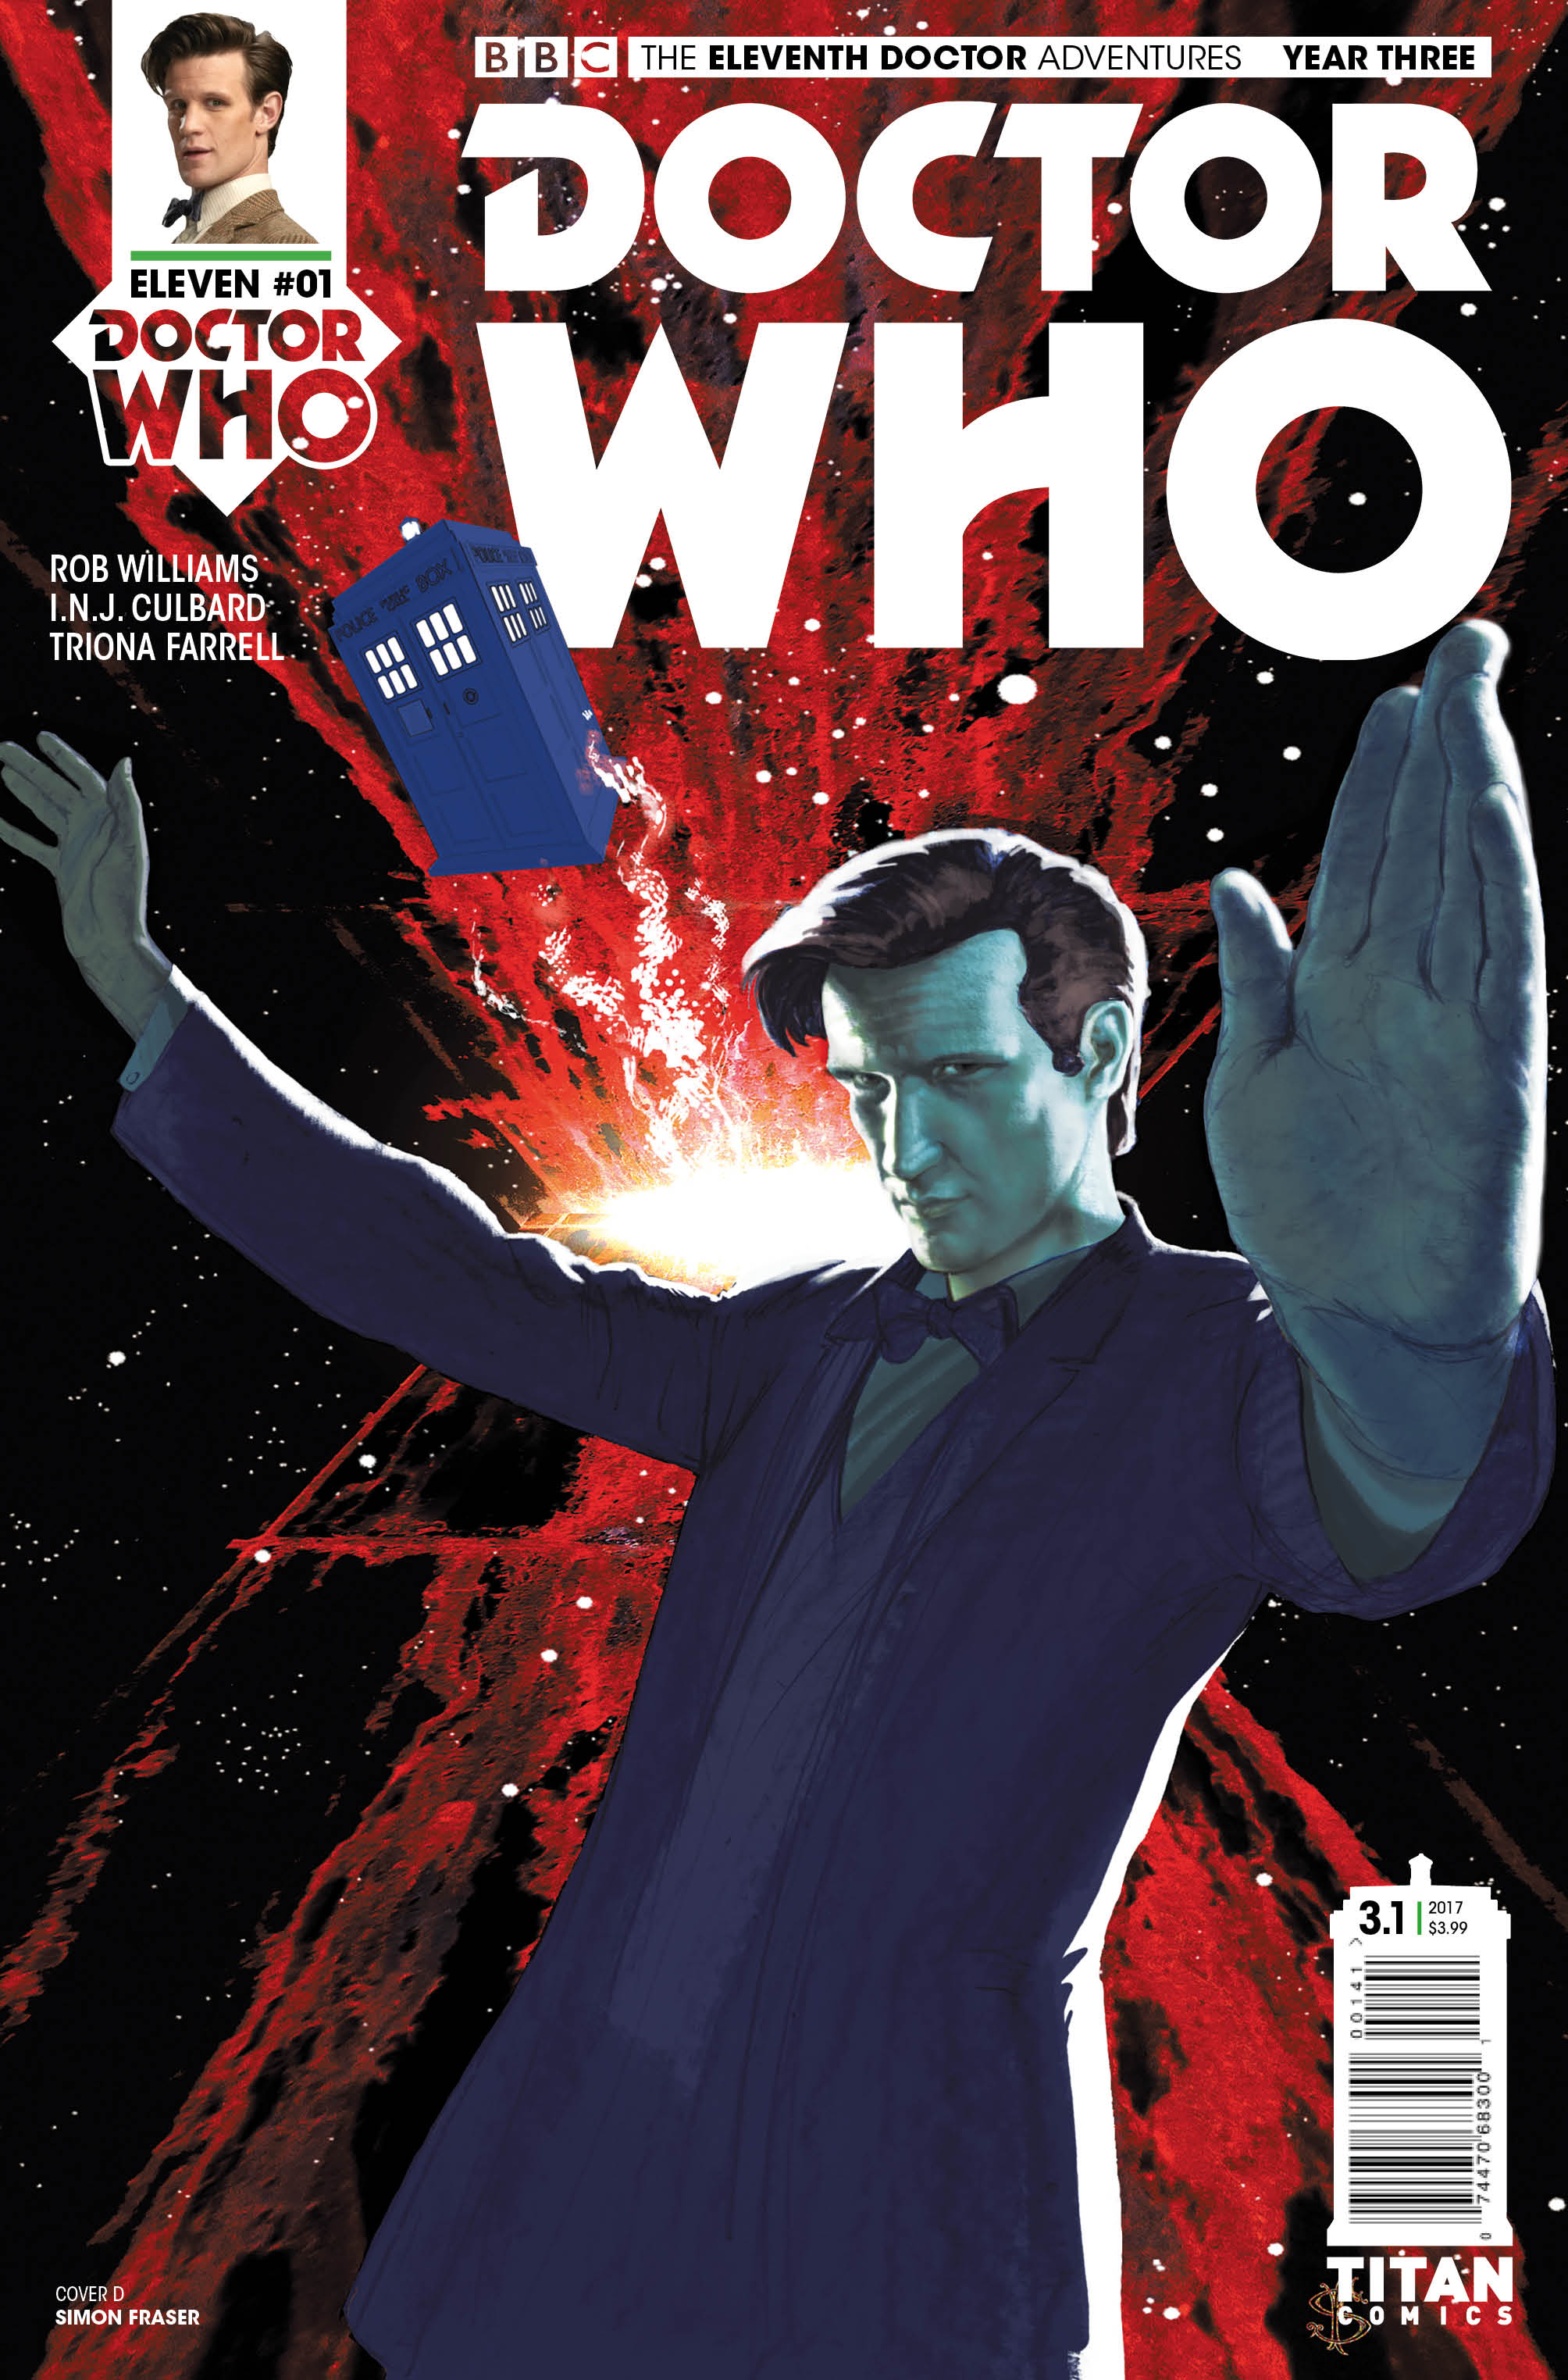 ELEVENTH DOCTOR YEAR THREE #1 Cover_D_Simon_Fraser (Credit: Titan)